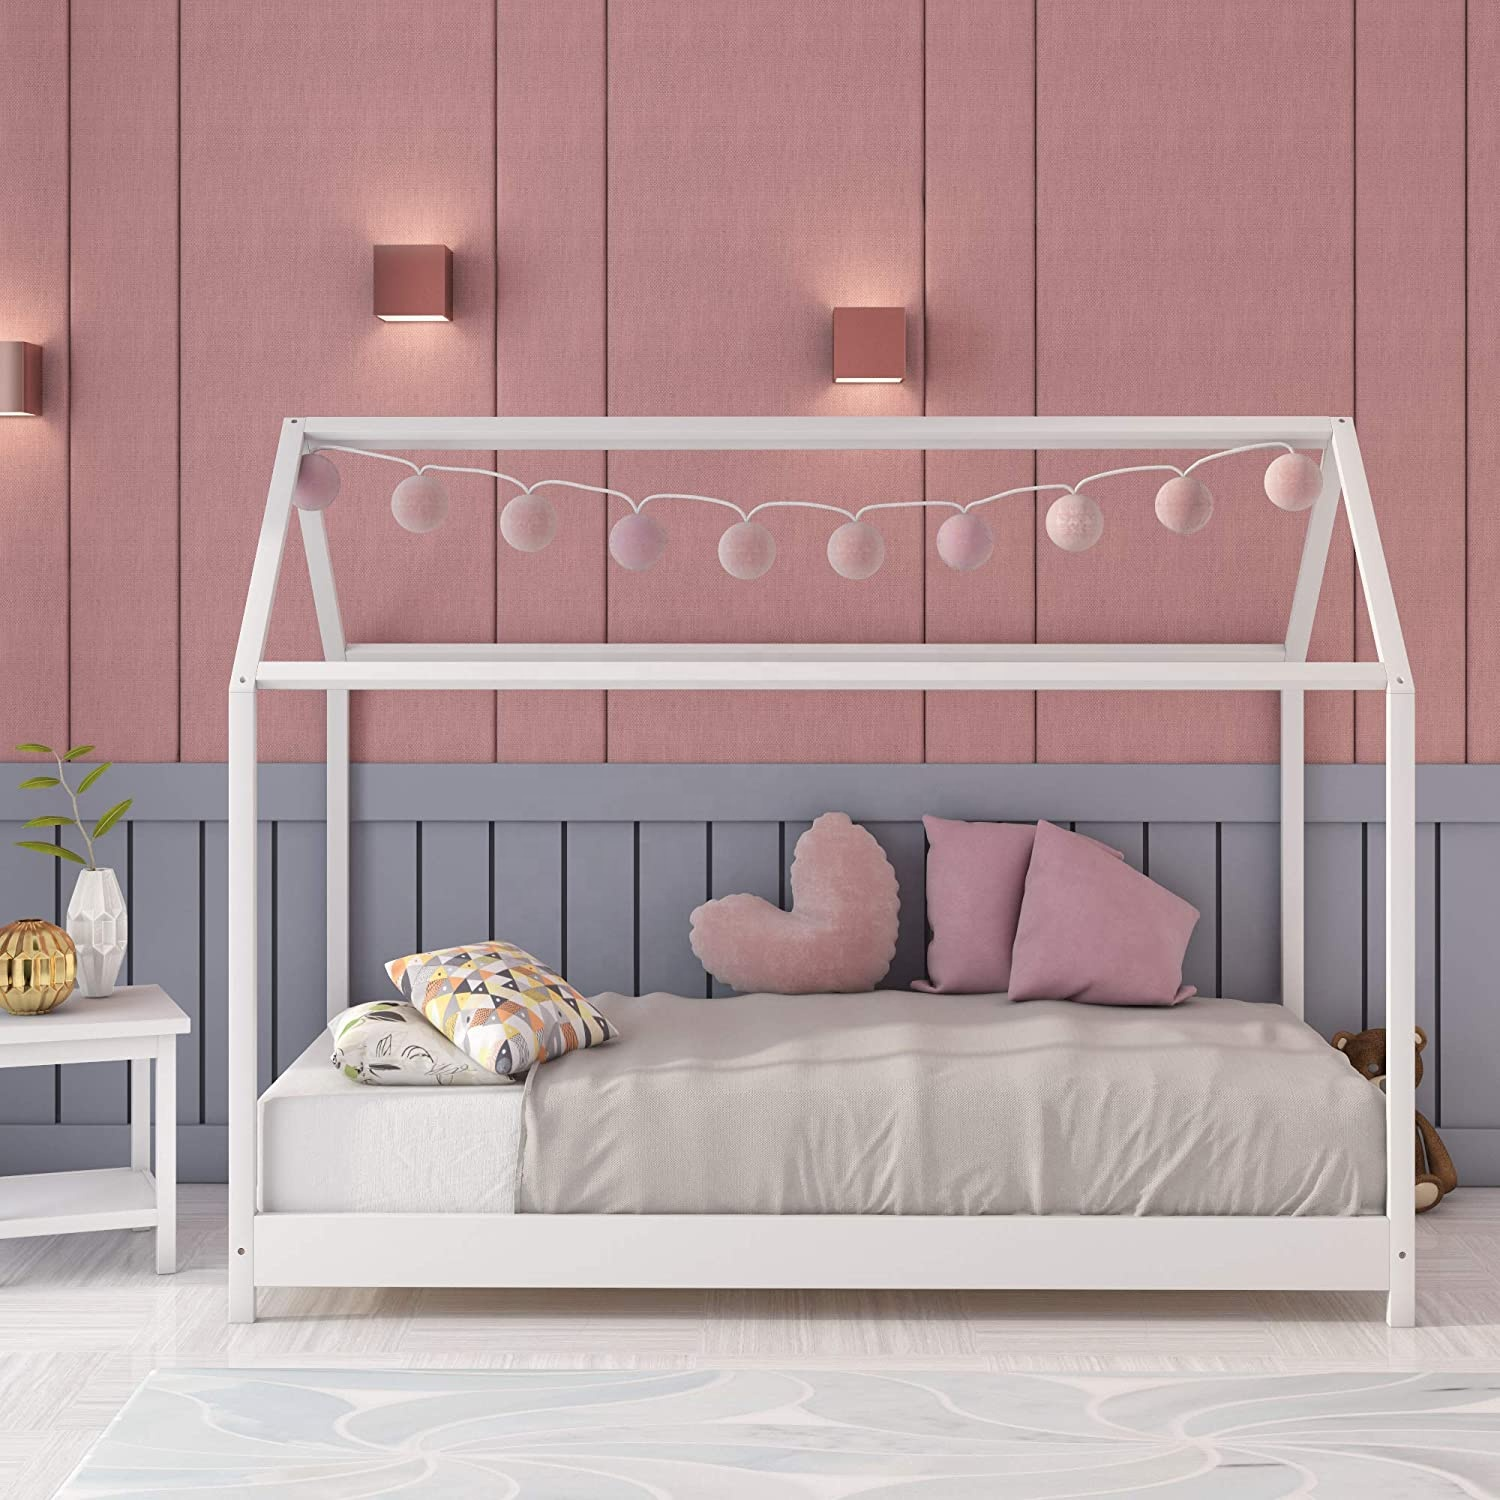 Solid Pine Wood Tree House Style Children Floor Bed Frame For Toddlers And Children Buy Baby Toddler Bed Kids Toddler Bed Children Toddler Bed Product On Alibaba Com